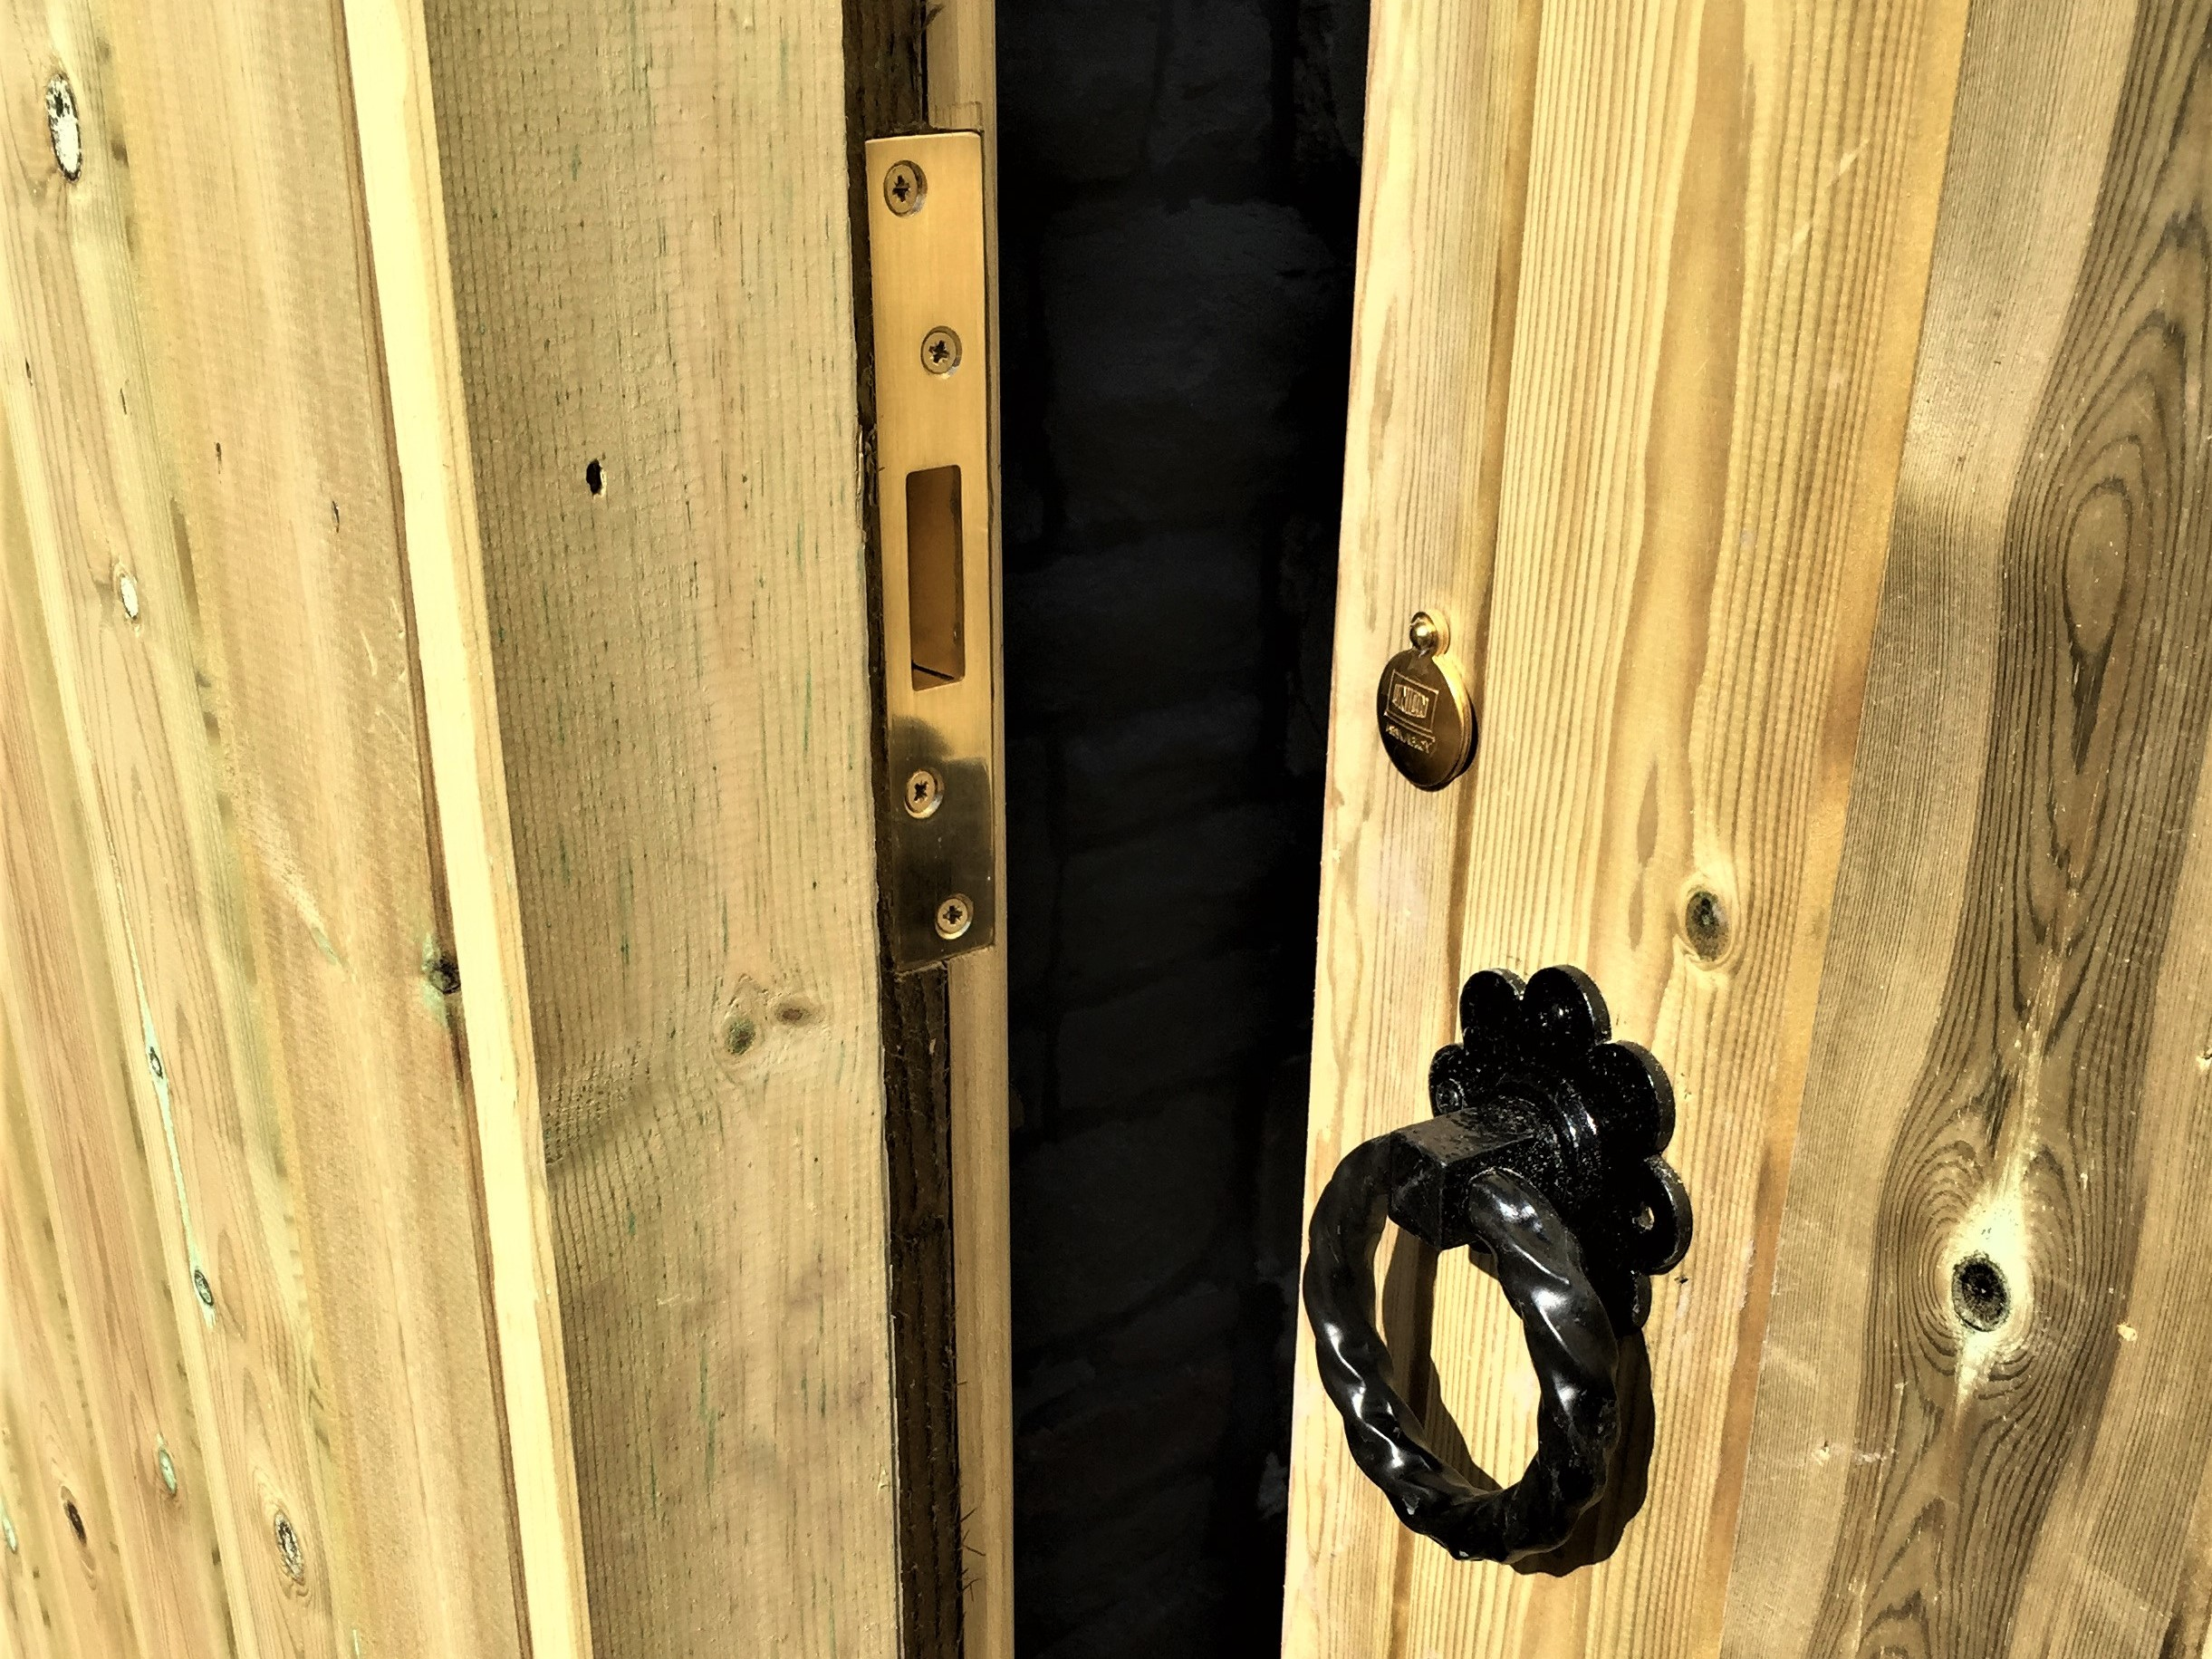 Deadlock fitted to tongue and groove gate